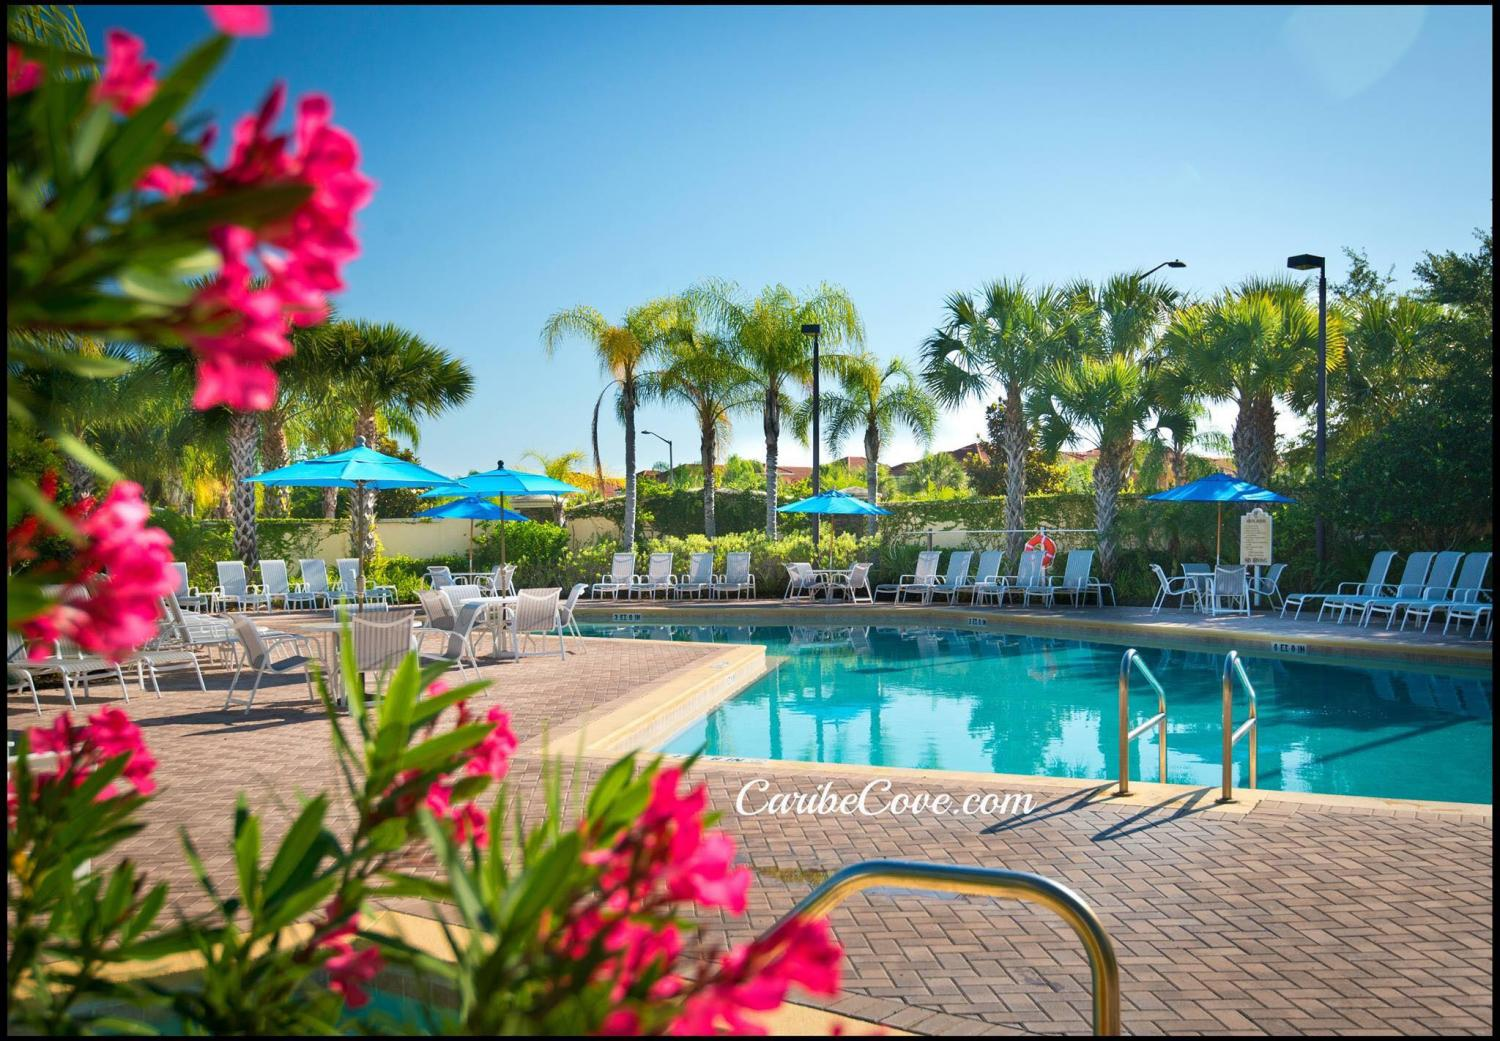 Caribe Cove Resort Orlando  Travel  Kissimmee  Kissimmee